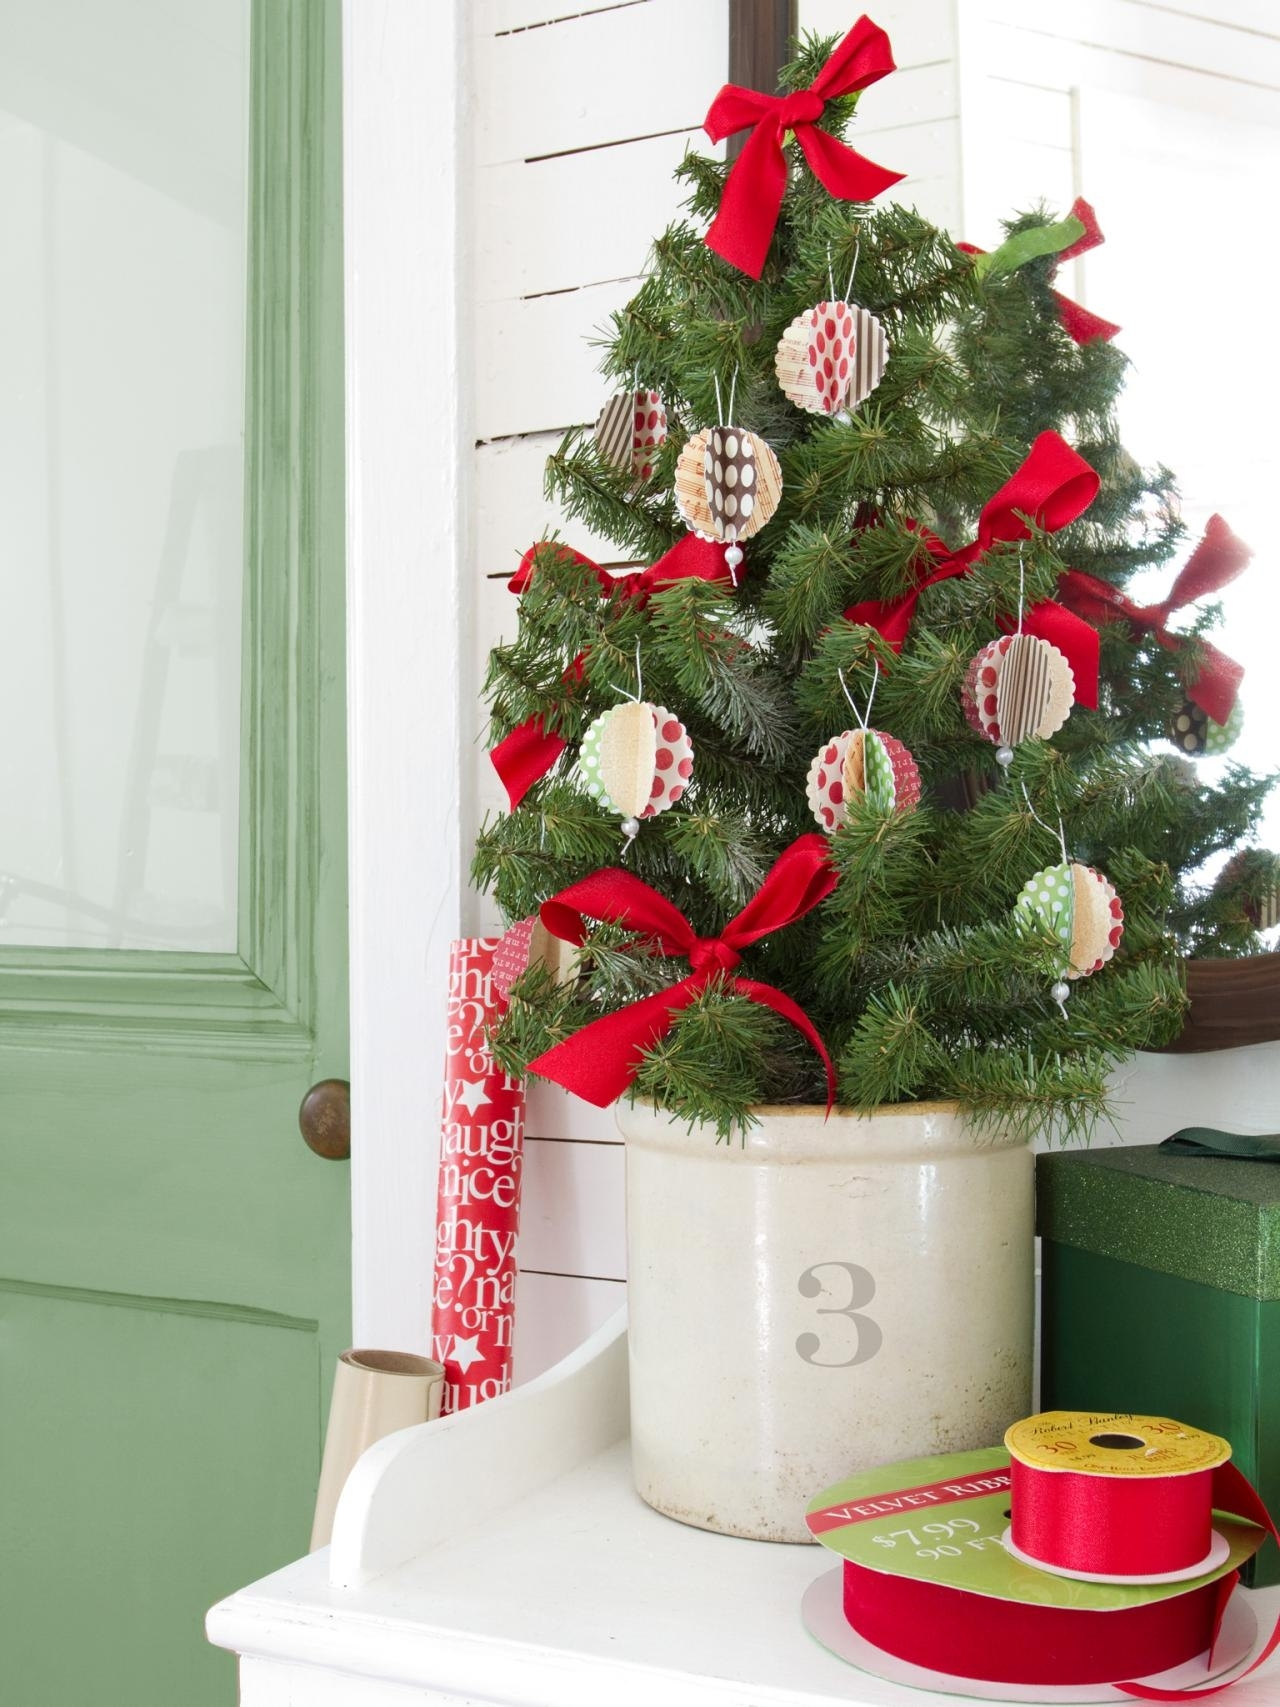 10 Cute Christmas Decorations Ideas To Make %name